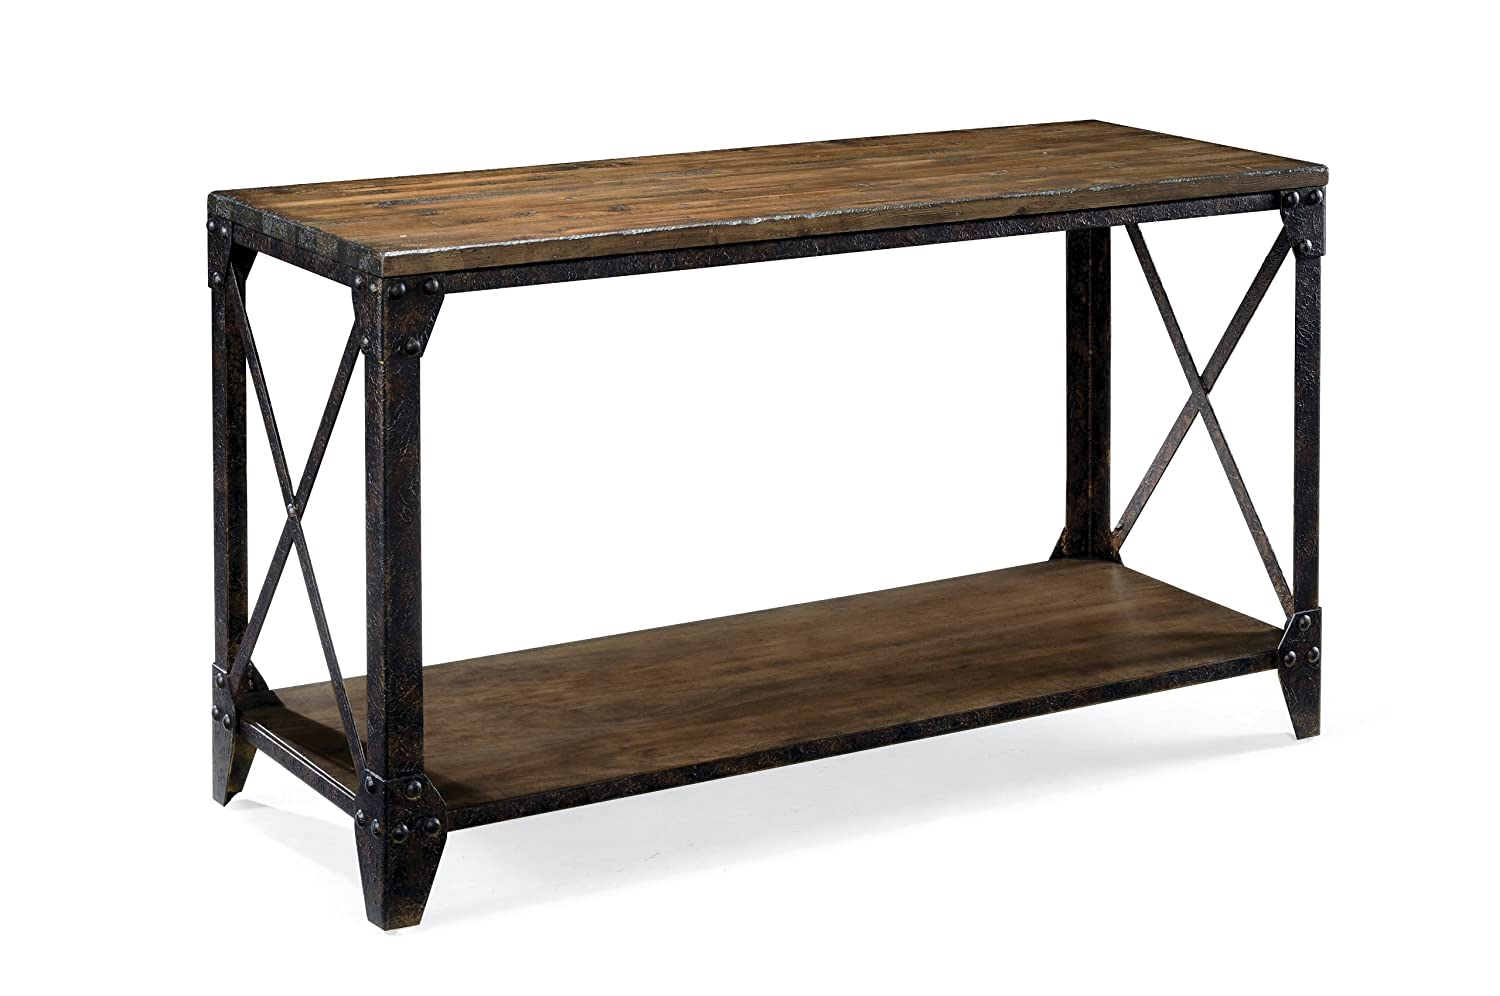 Amazon magnussen t1755 pinebrook distressed natural pine wood amazon magnussen t1755 pinebrook distressed natural pine wood rectangular sofa table kitchen dining geotapseo Gallery